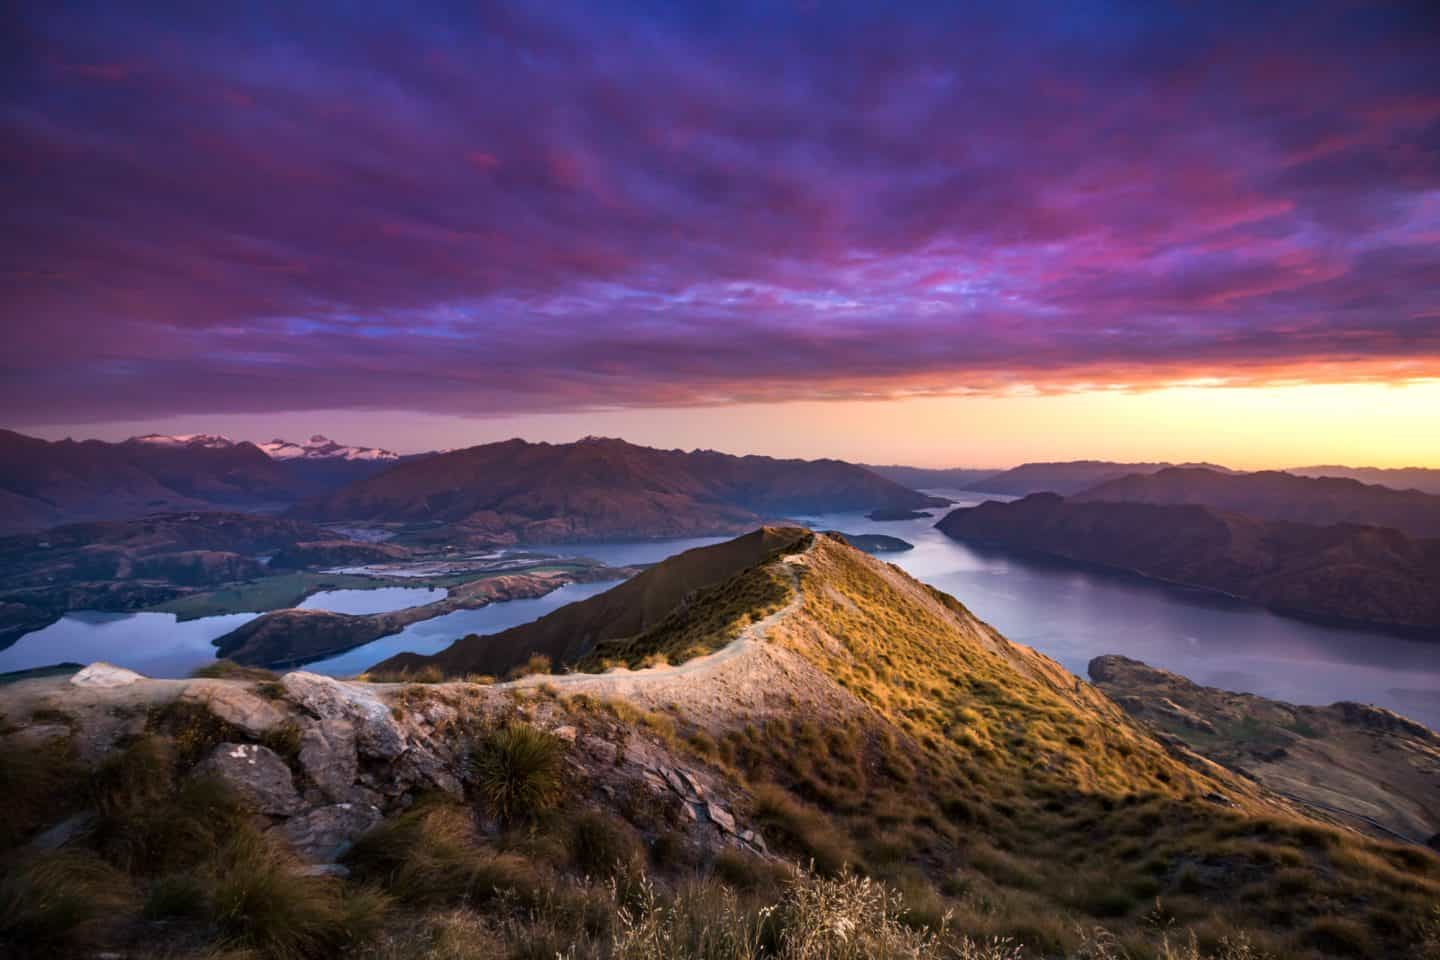 Roys Peak sunrise photography featuring a dramatic, colorful sky.